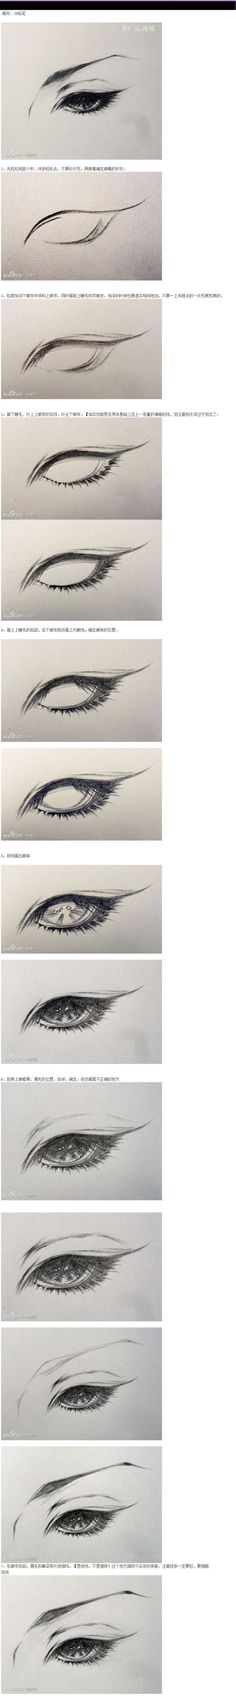 New drawing sketches animation anime eyes Ideas Eye Drawing Tutorials, Drawing Techniques, Drawing Tips, Drawing Reference, Art Tutorials, Drawing Sketches, Painting & Drawing, Manga Drawing, Drawing Ideas